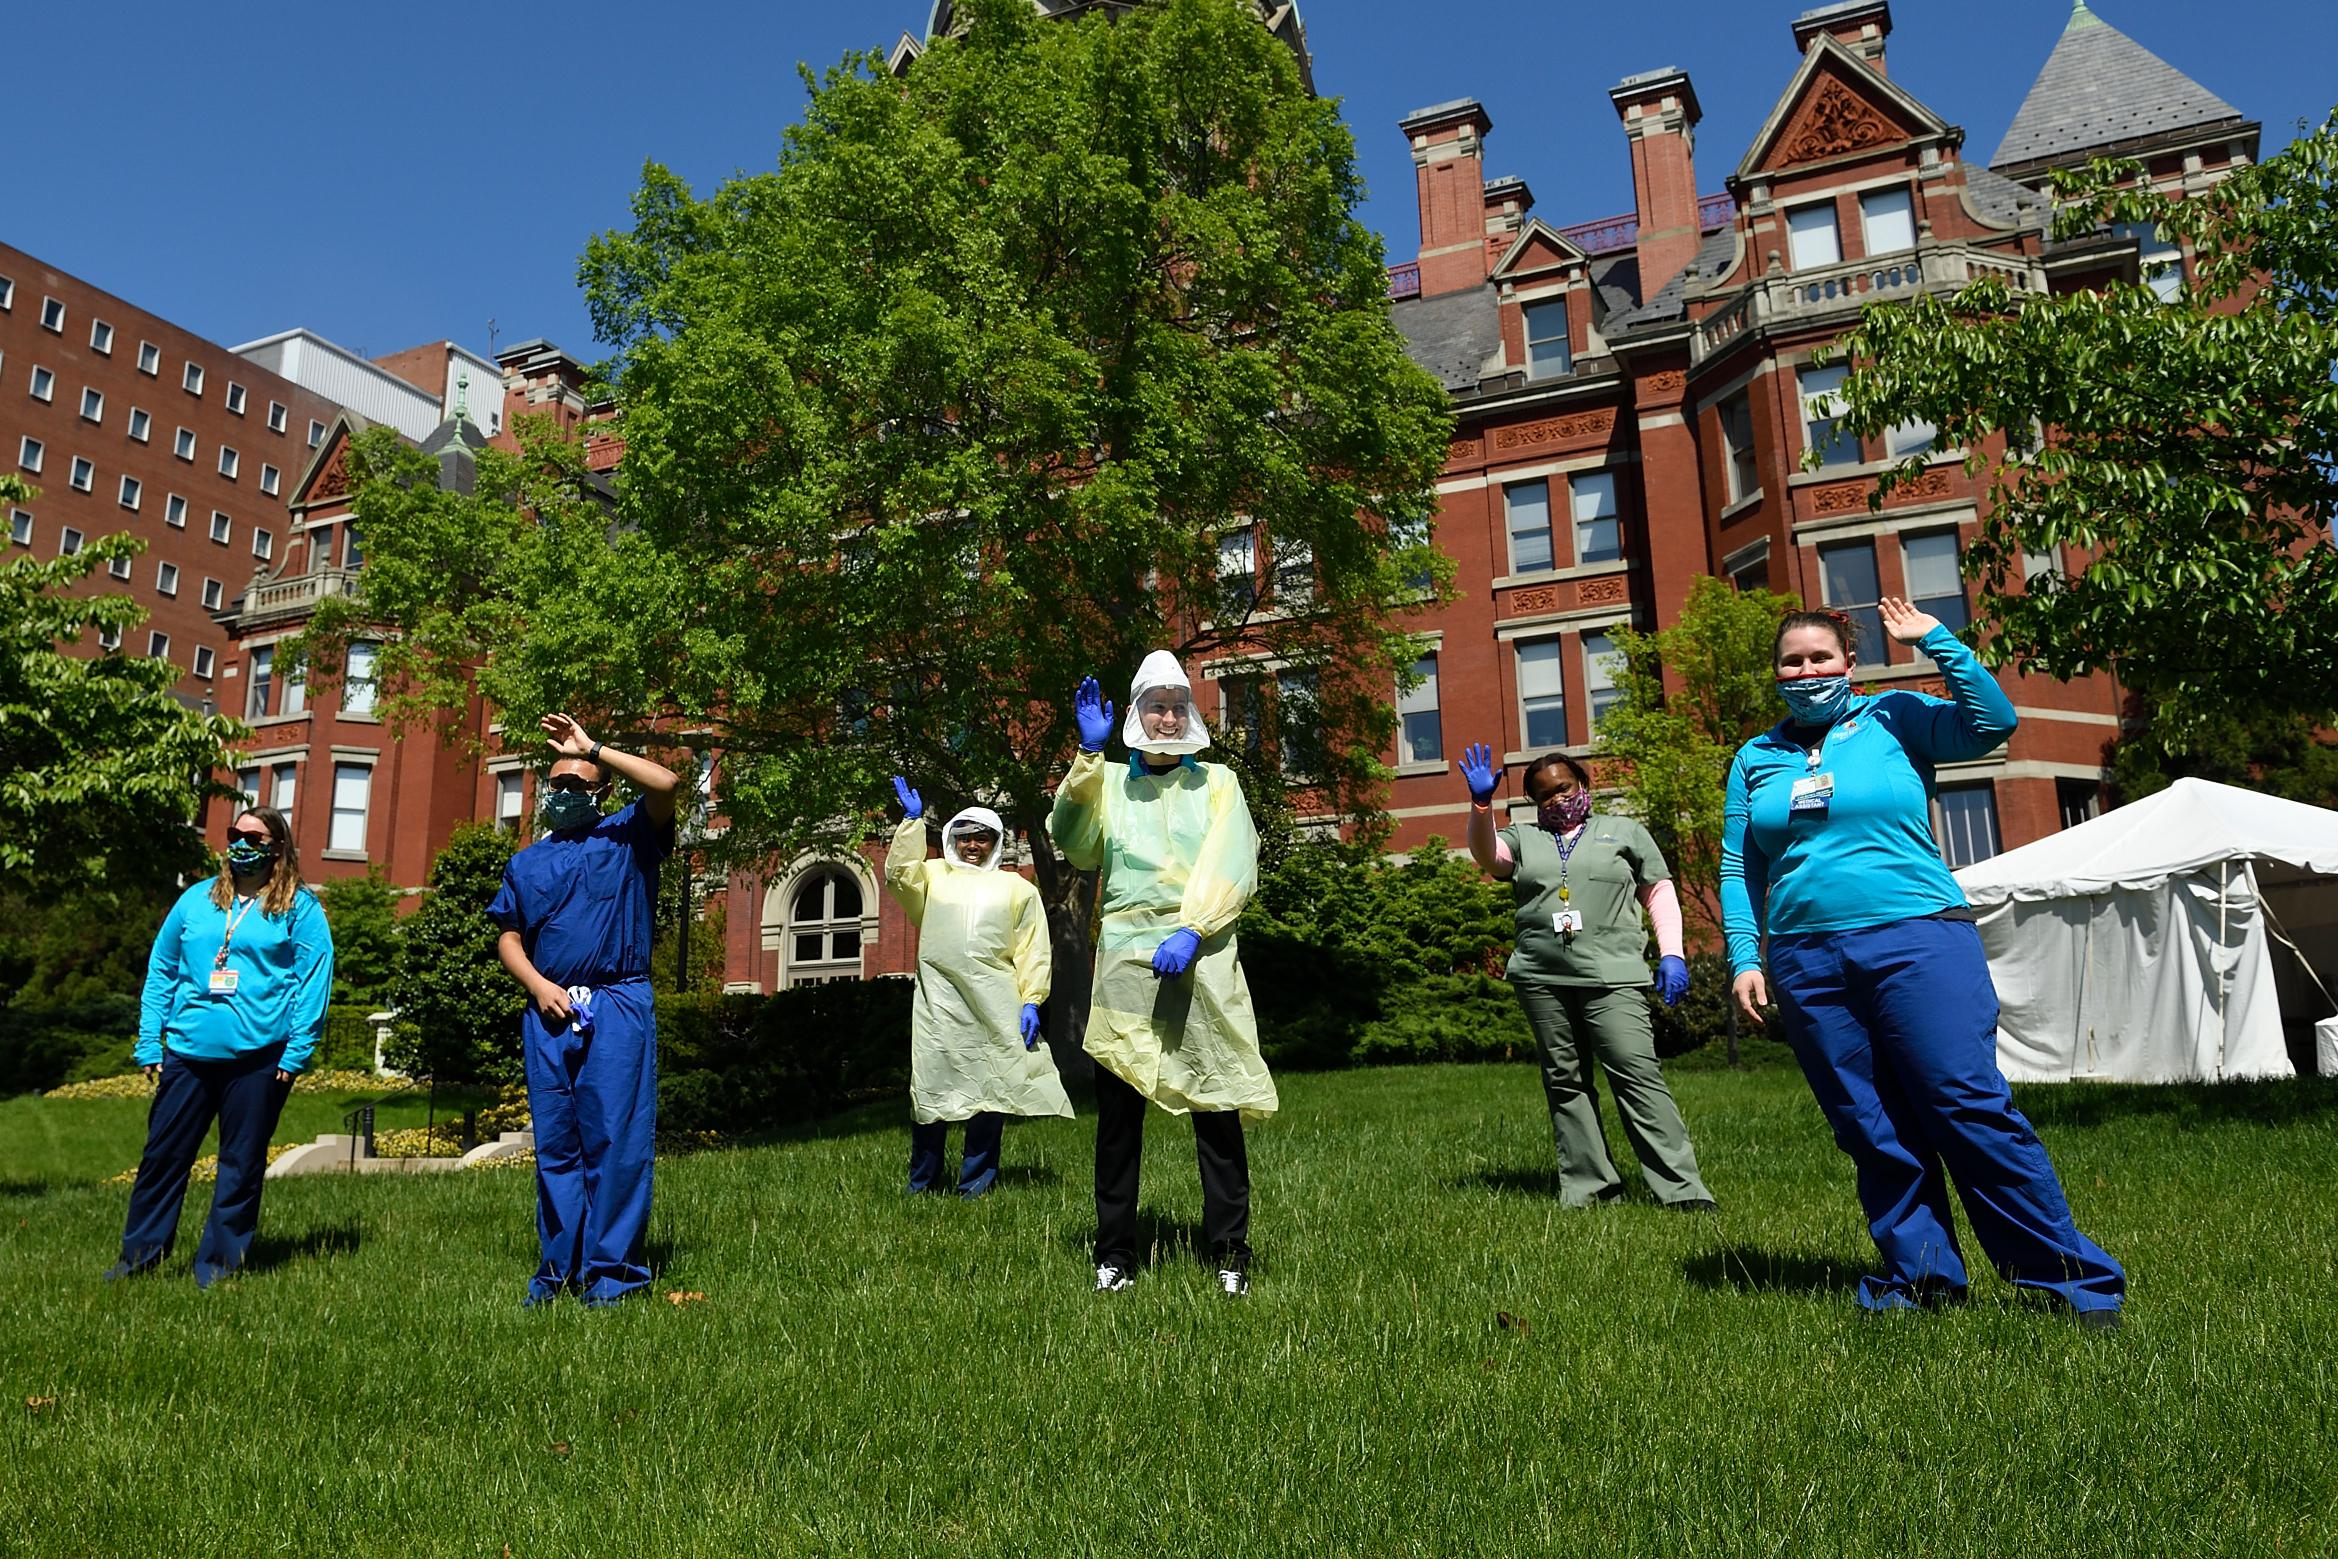 Johns Hopkins employees stand outside of The Johns Hopkins Hospital waving